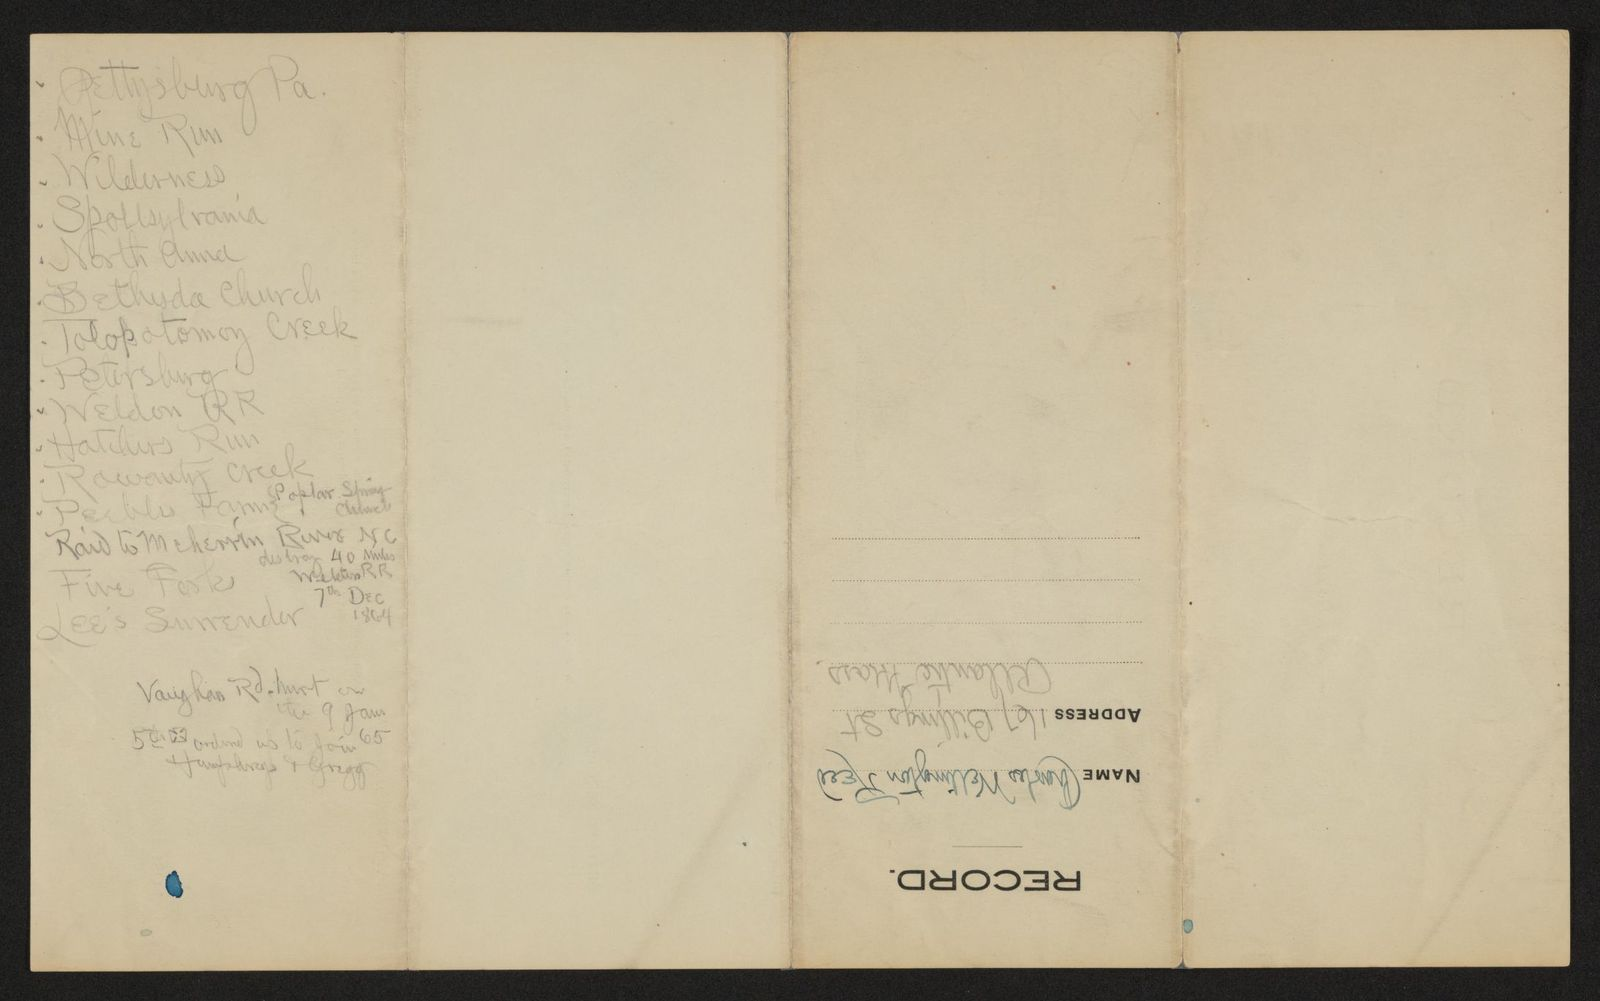 Charles Wellington Reed Papers: Miscellany,  1776-1899, undated